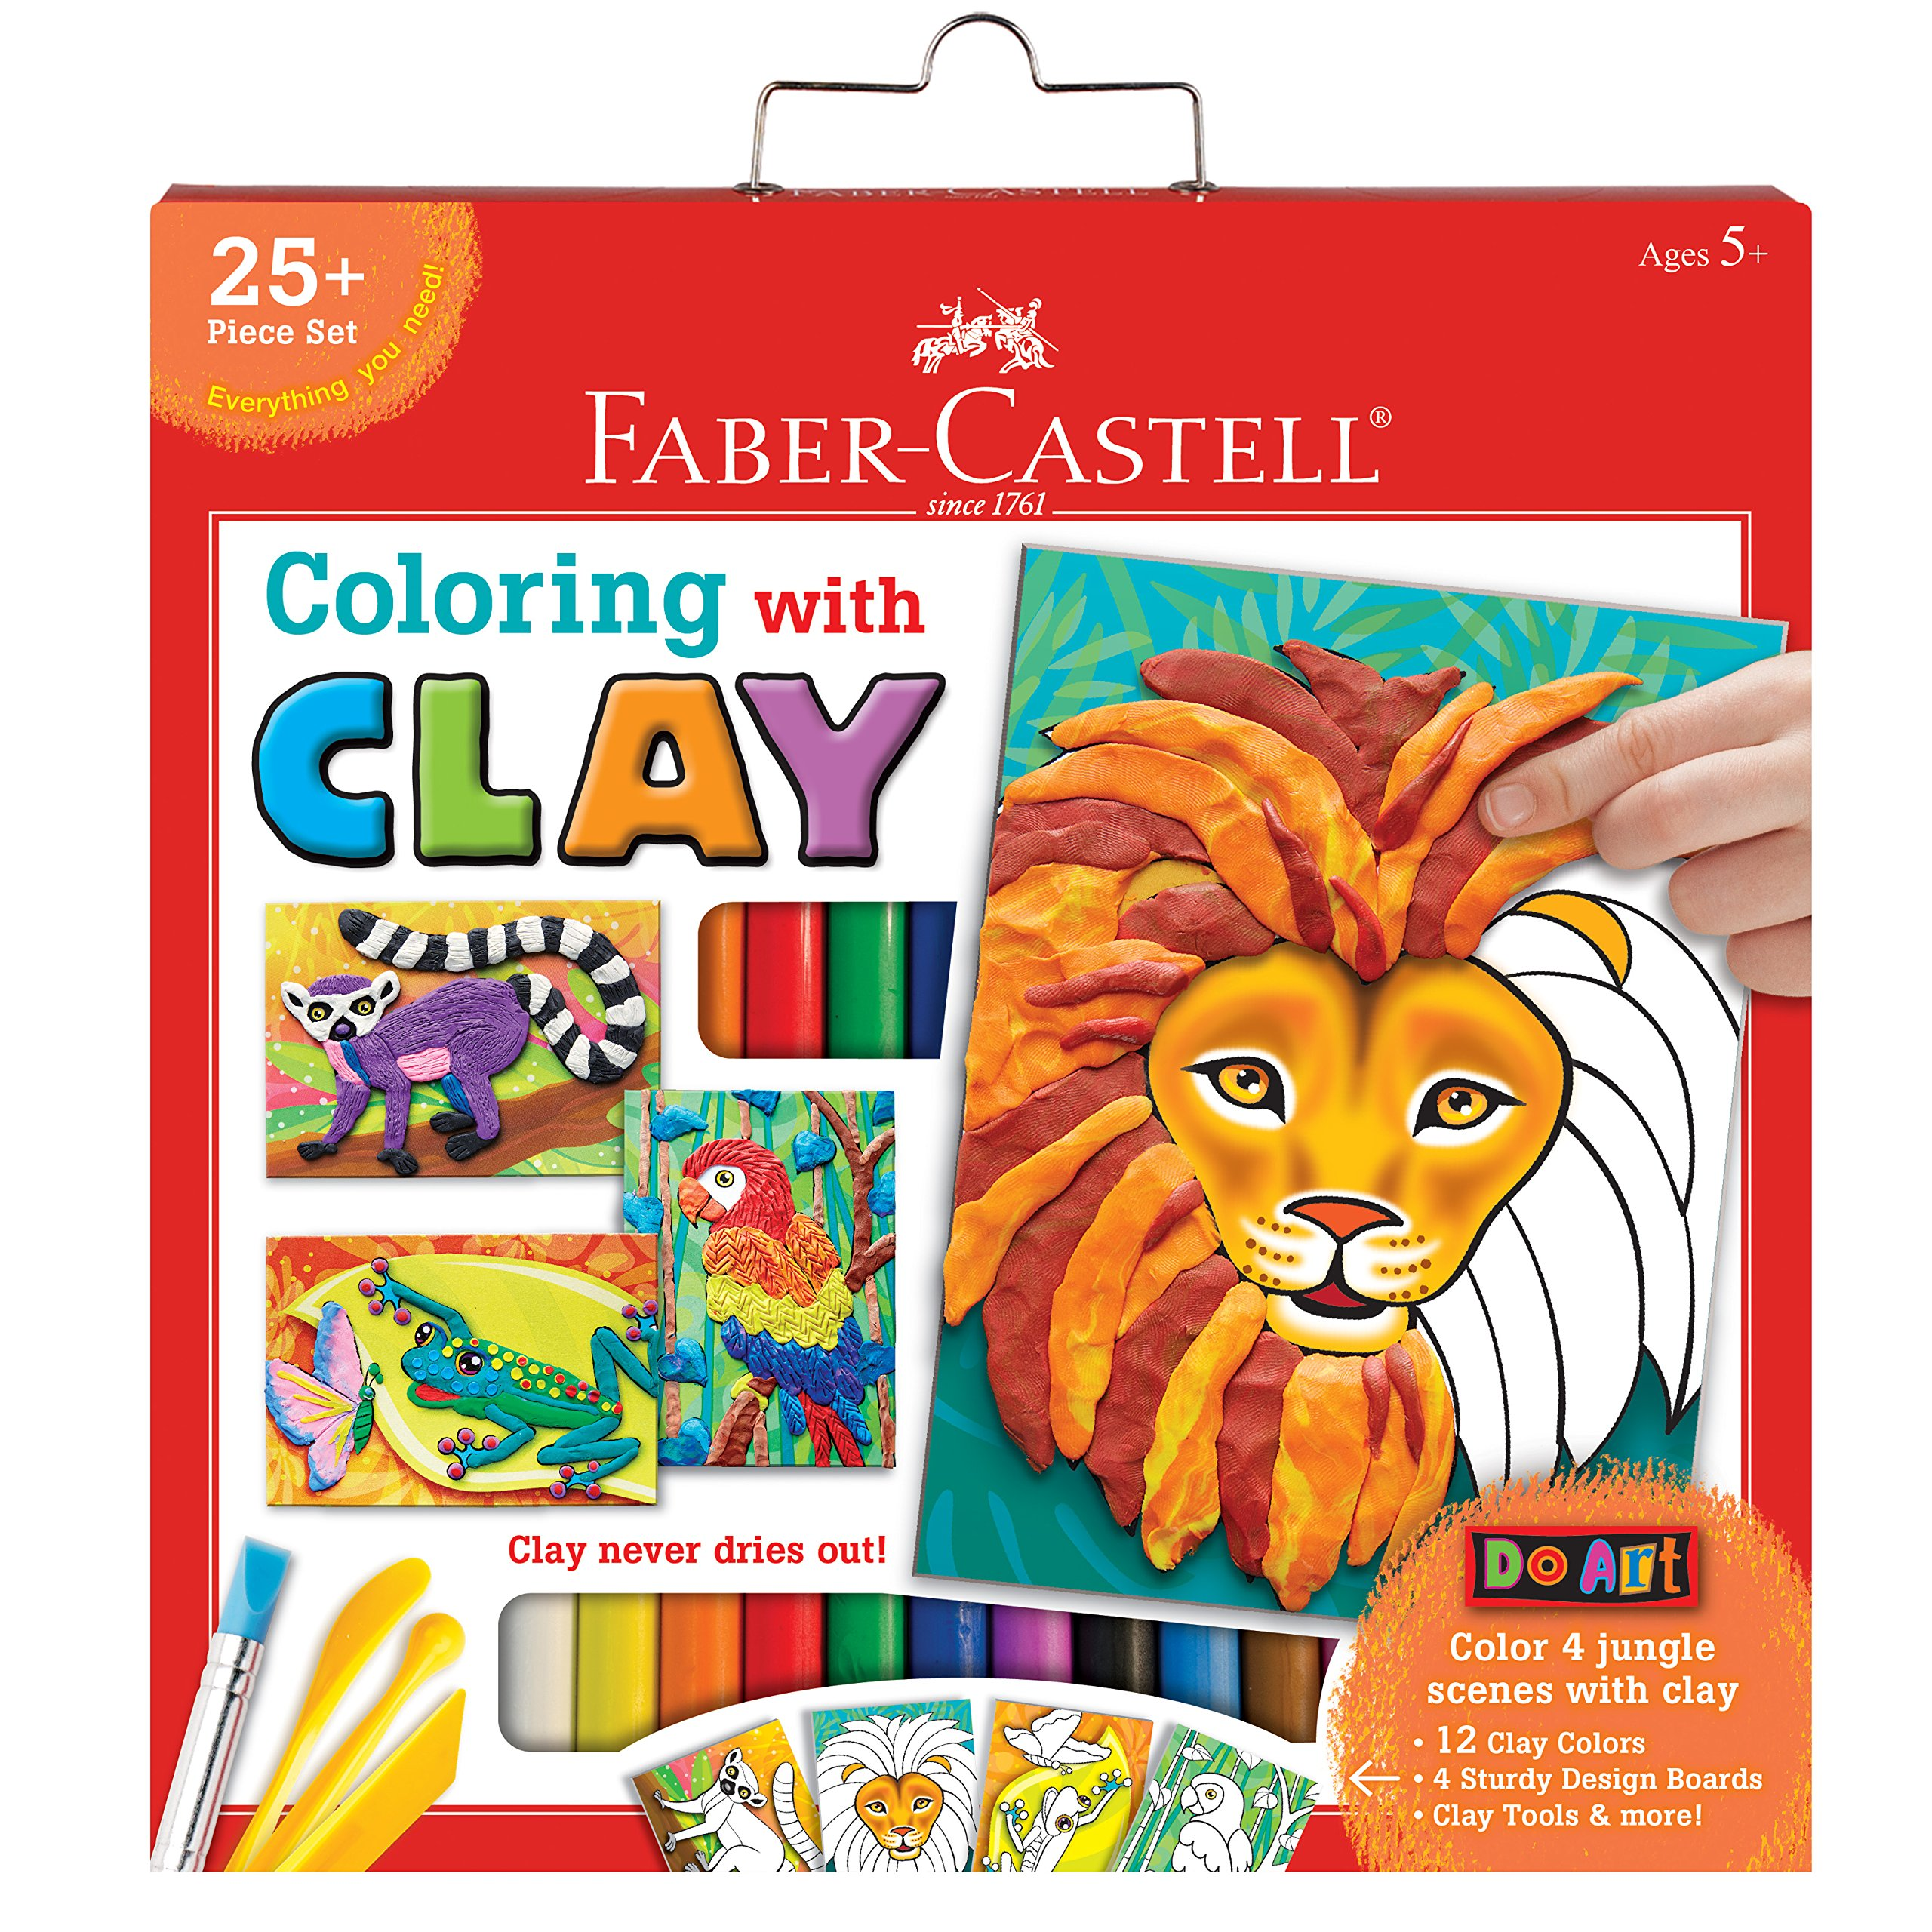 Faber Castell Do Art Coloring Clay